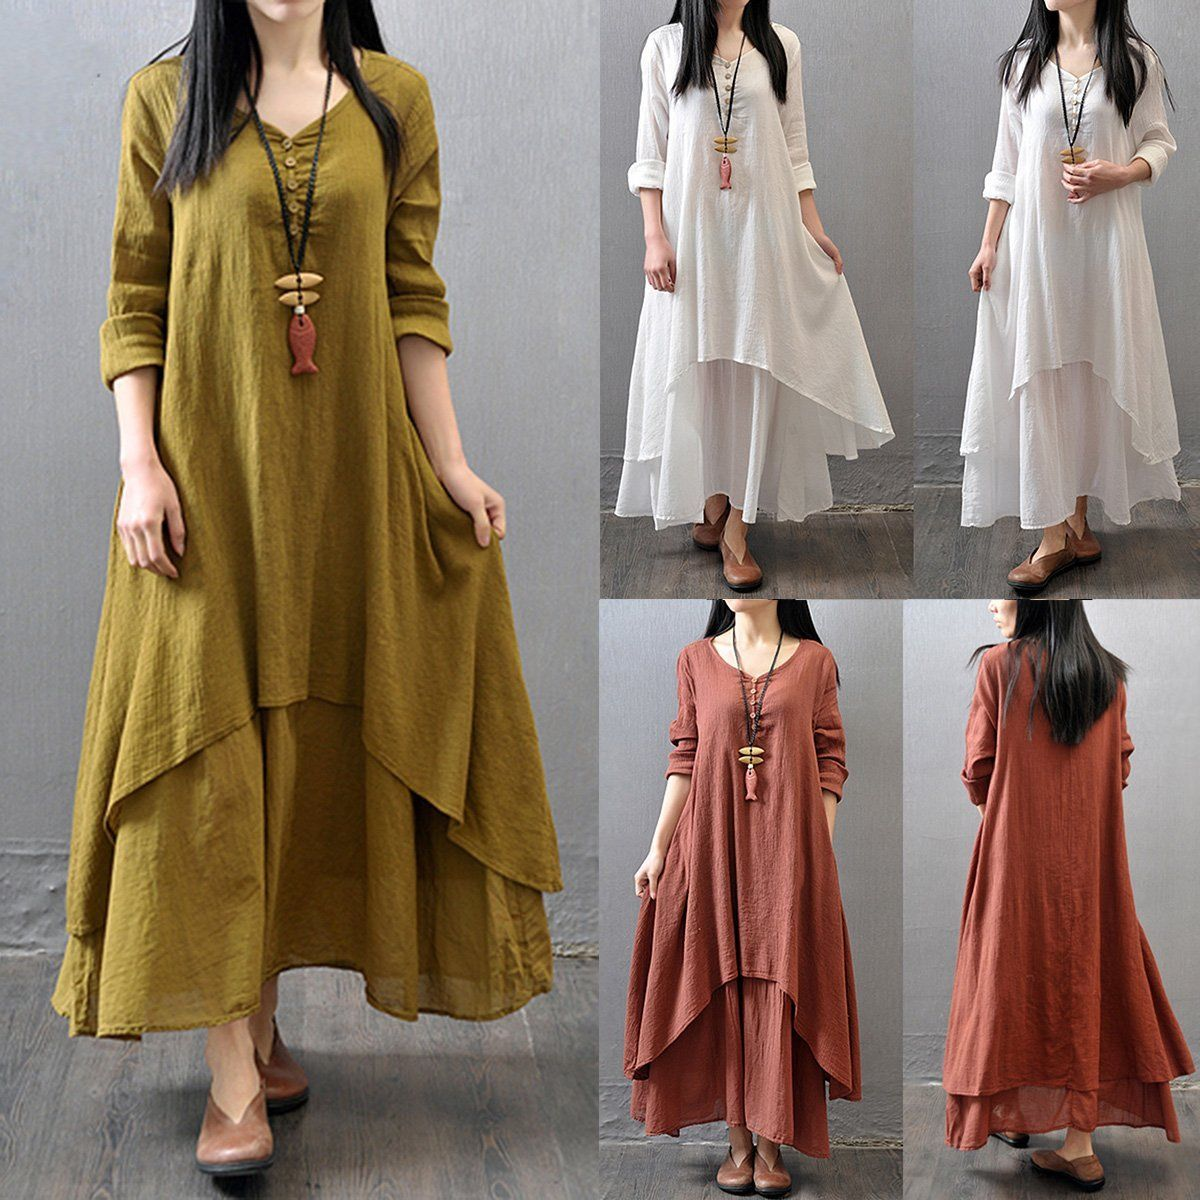 0609a63be4e Detail Feedback Questions about 2019 Fashion Women Peasant Ethnic ...